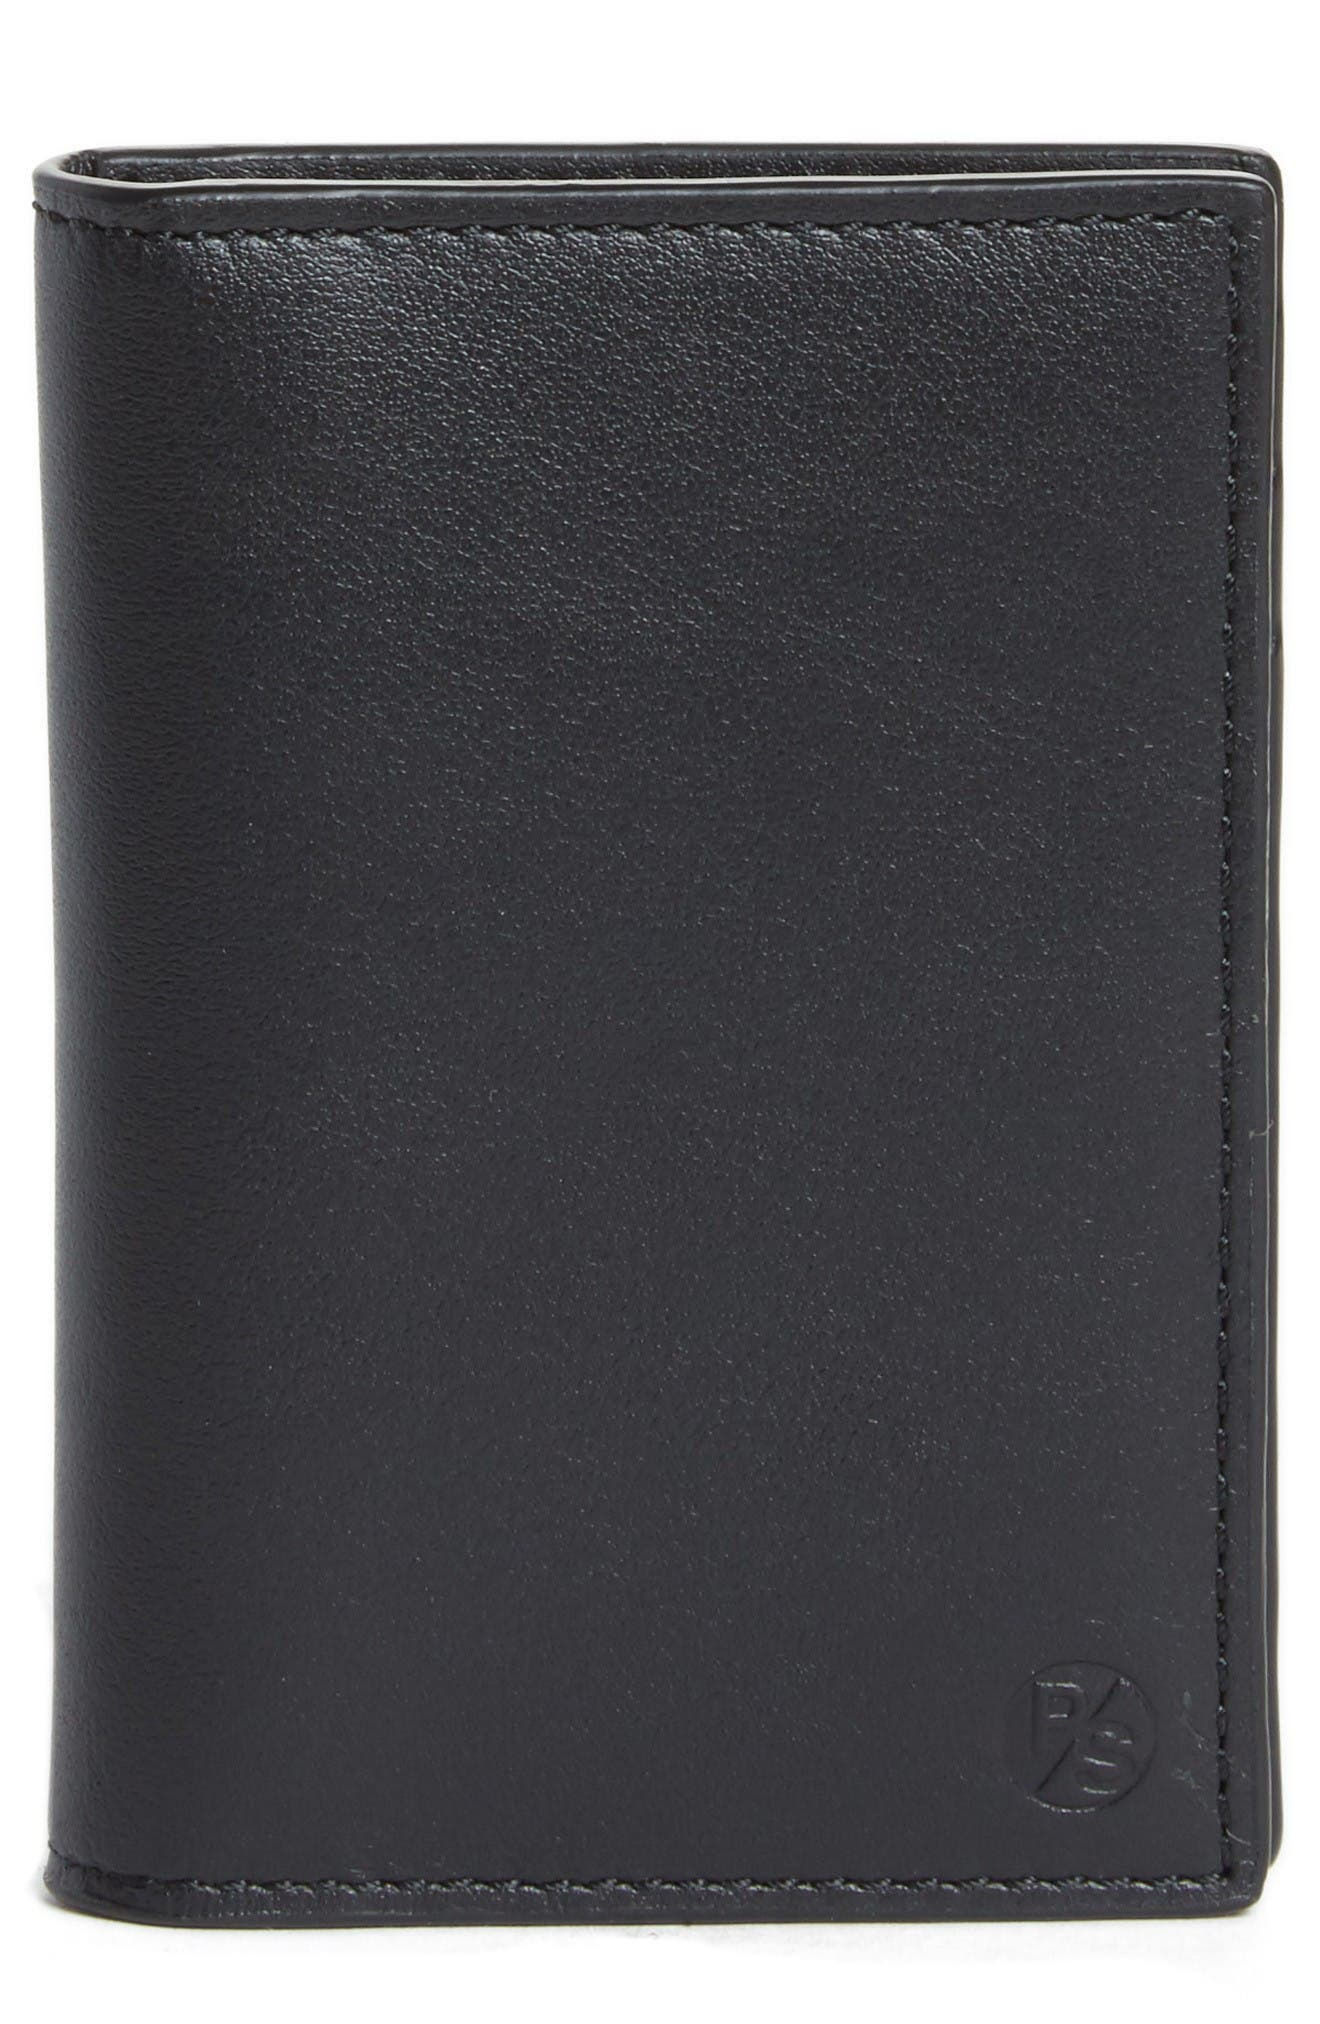 Main Image - Paul Smith Color Accent Leather Wallet